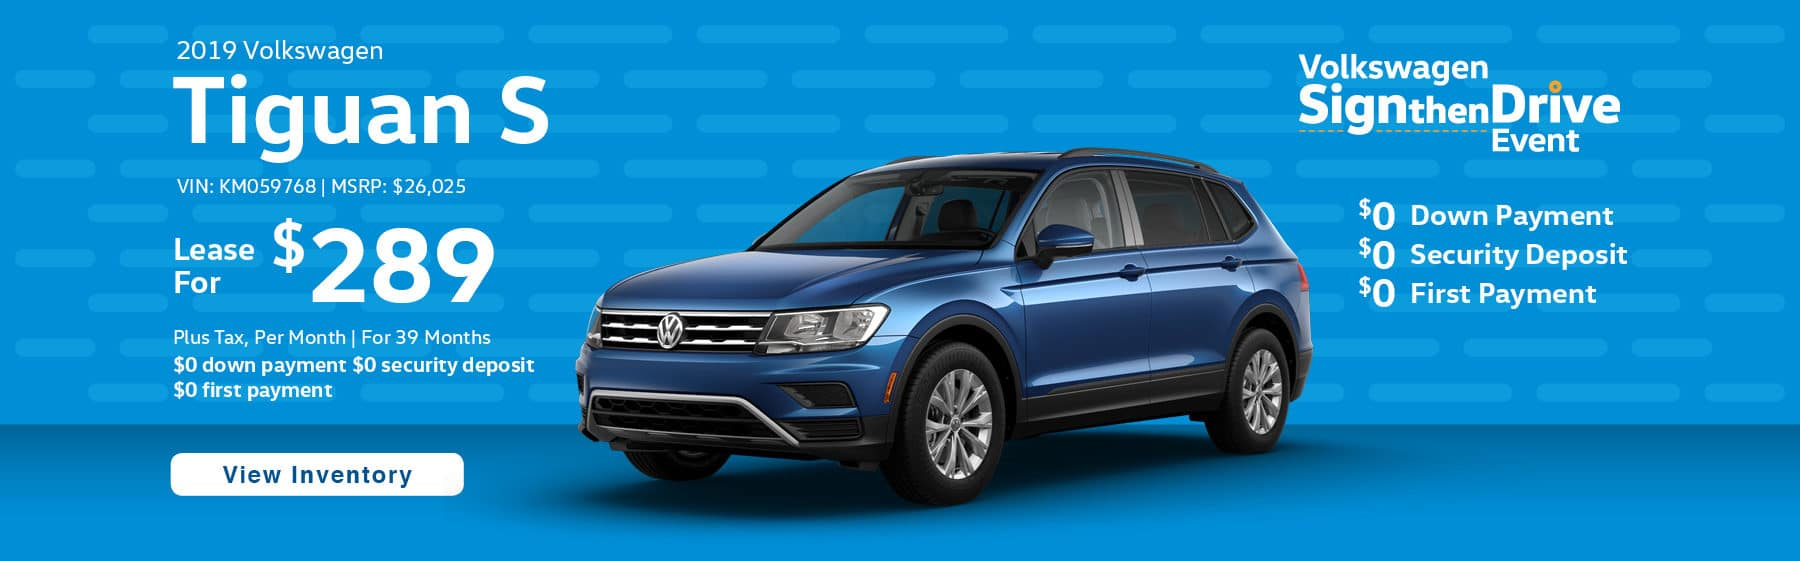 Lease the 2019 Volkswagen Tiguan S for $289 plus tax for 39 months. $0 Down payment required.